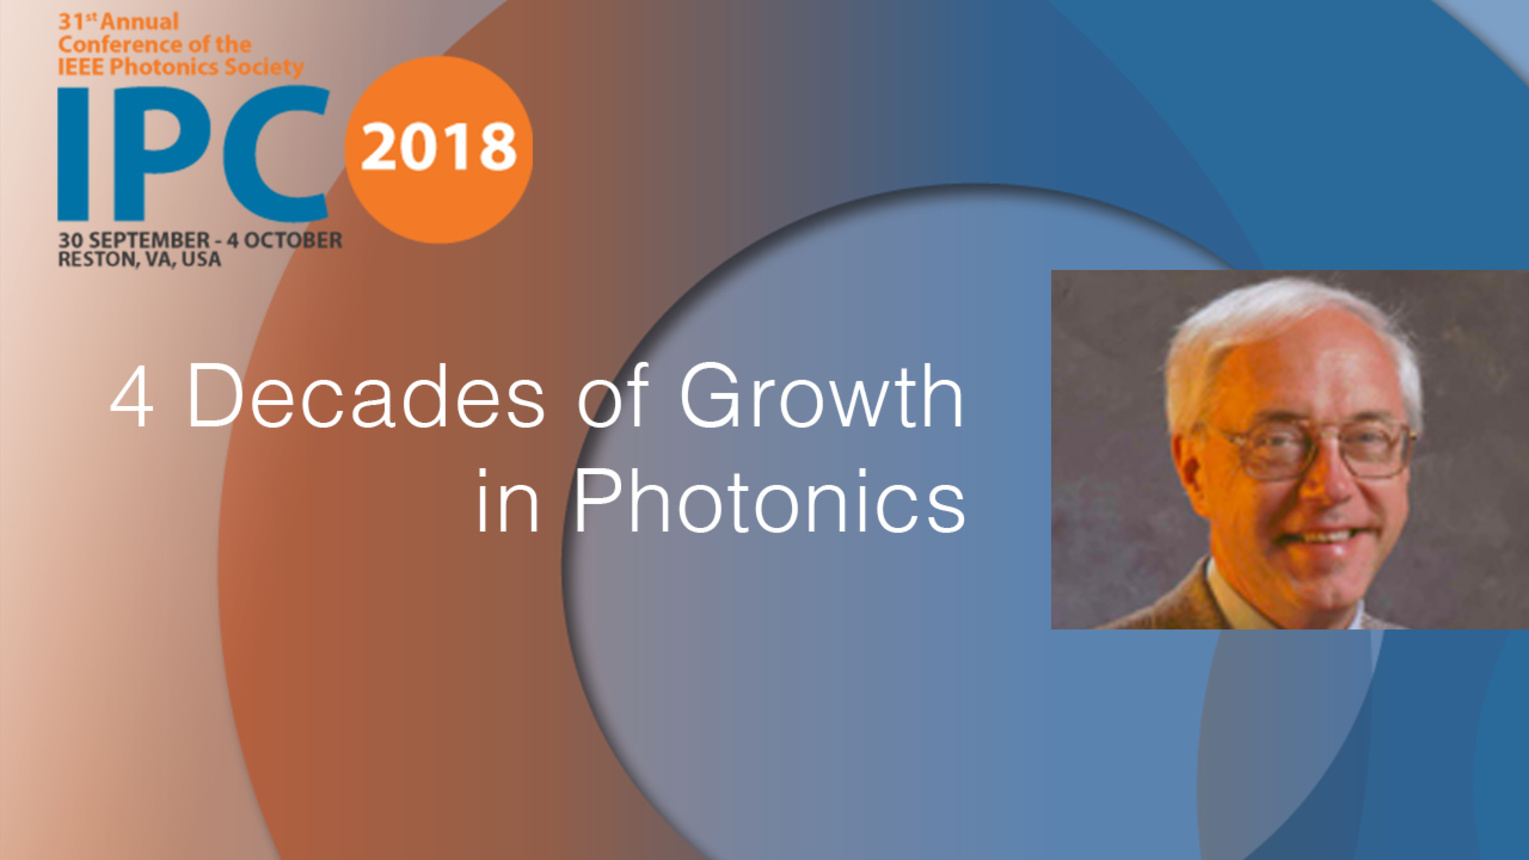 IEEEtv | Conference Highlights | 4 Decades of Growth in Photonics